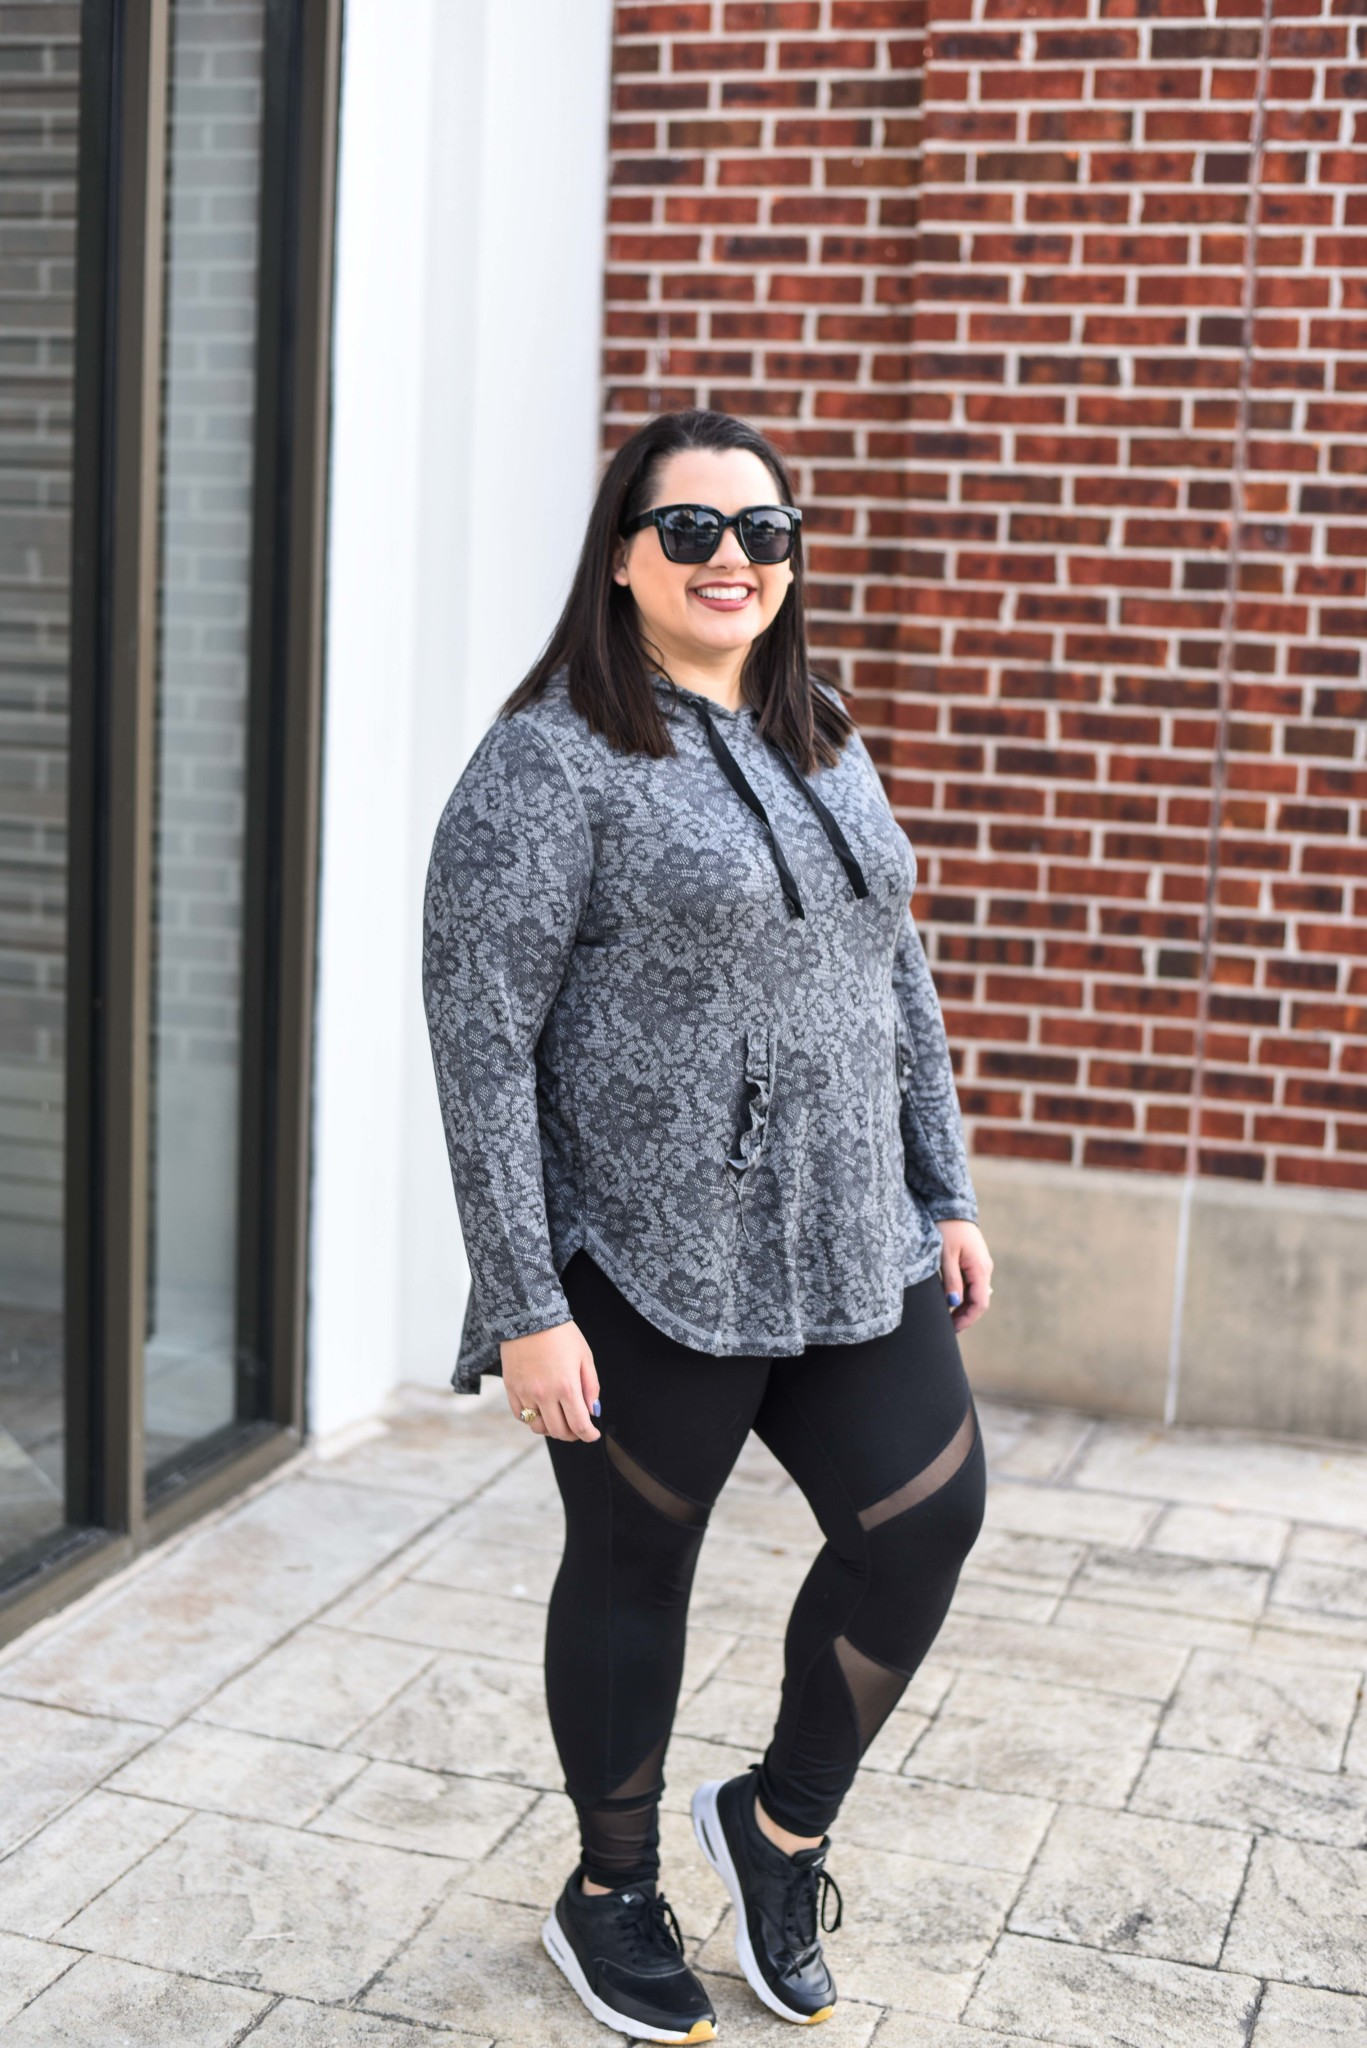 LIVI Activewear on sale during Lane Bryant Cyber Week Sale